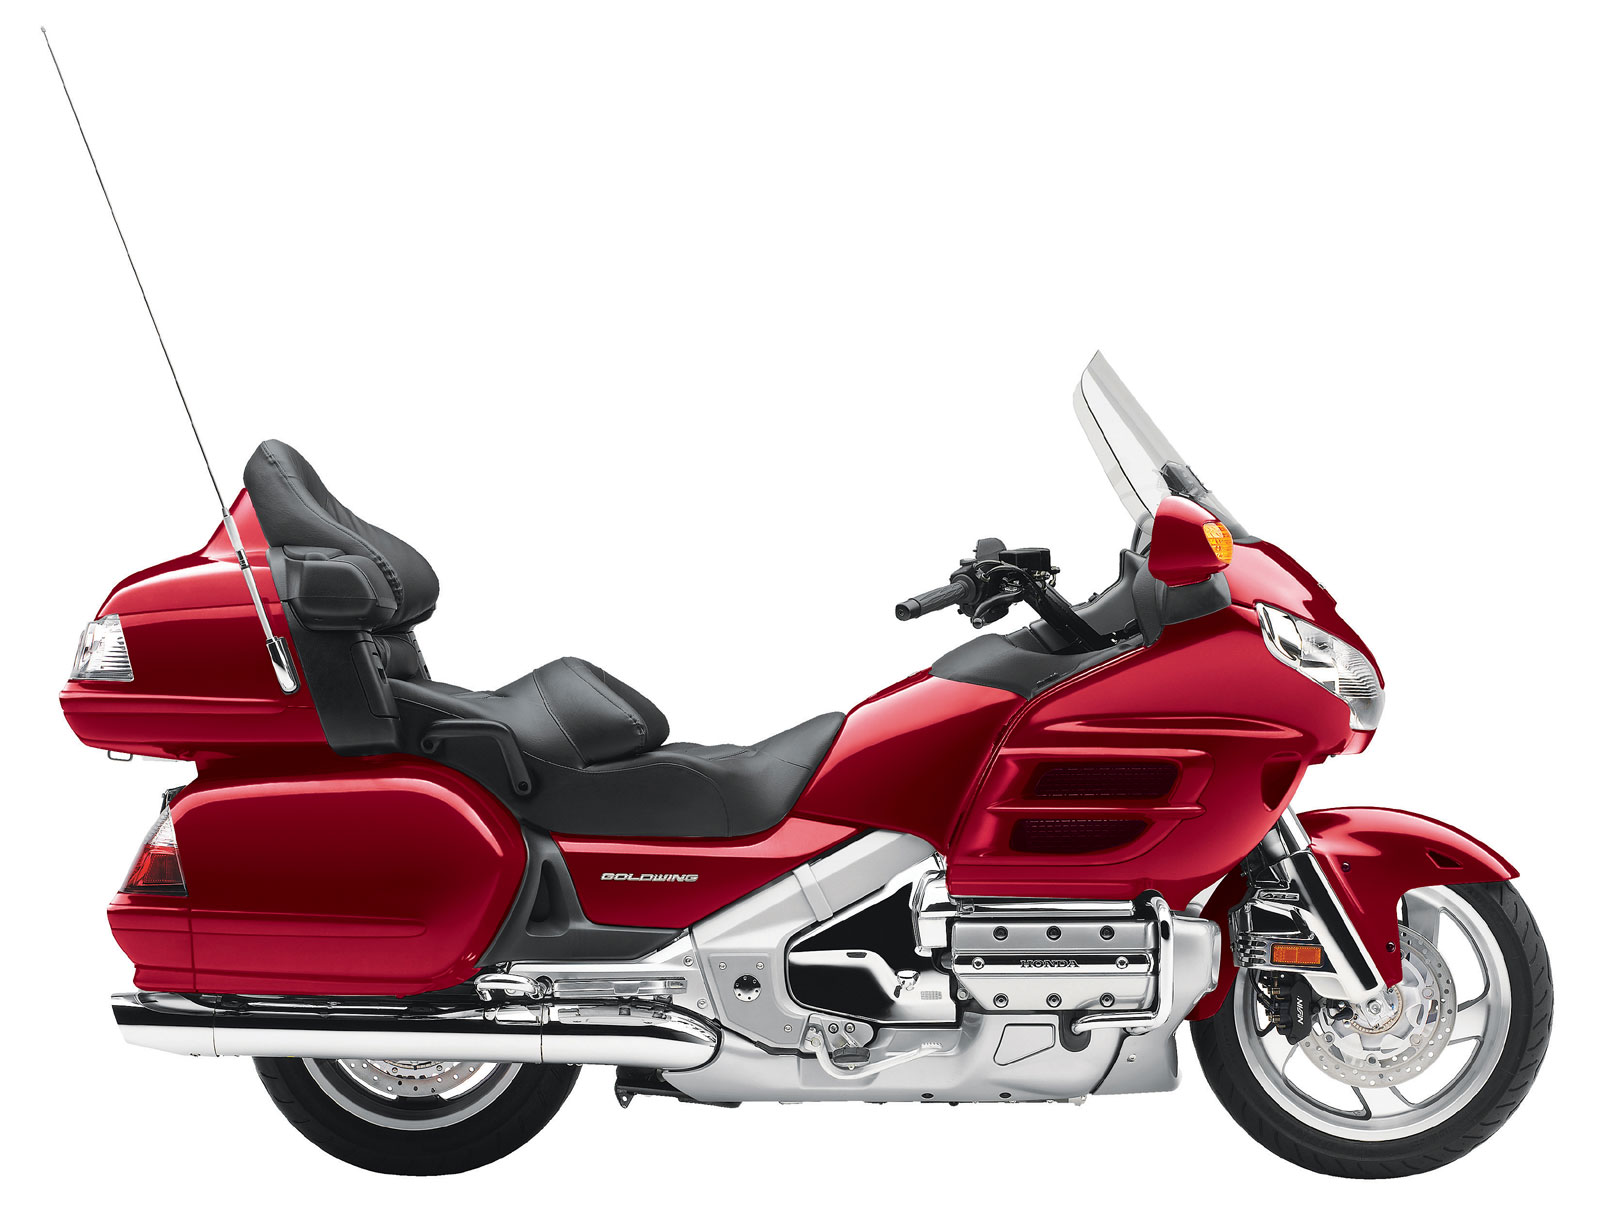 Honda GL 1800 Gold Wing 2004 images #82712